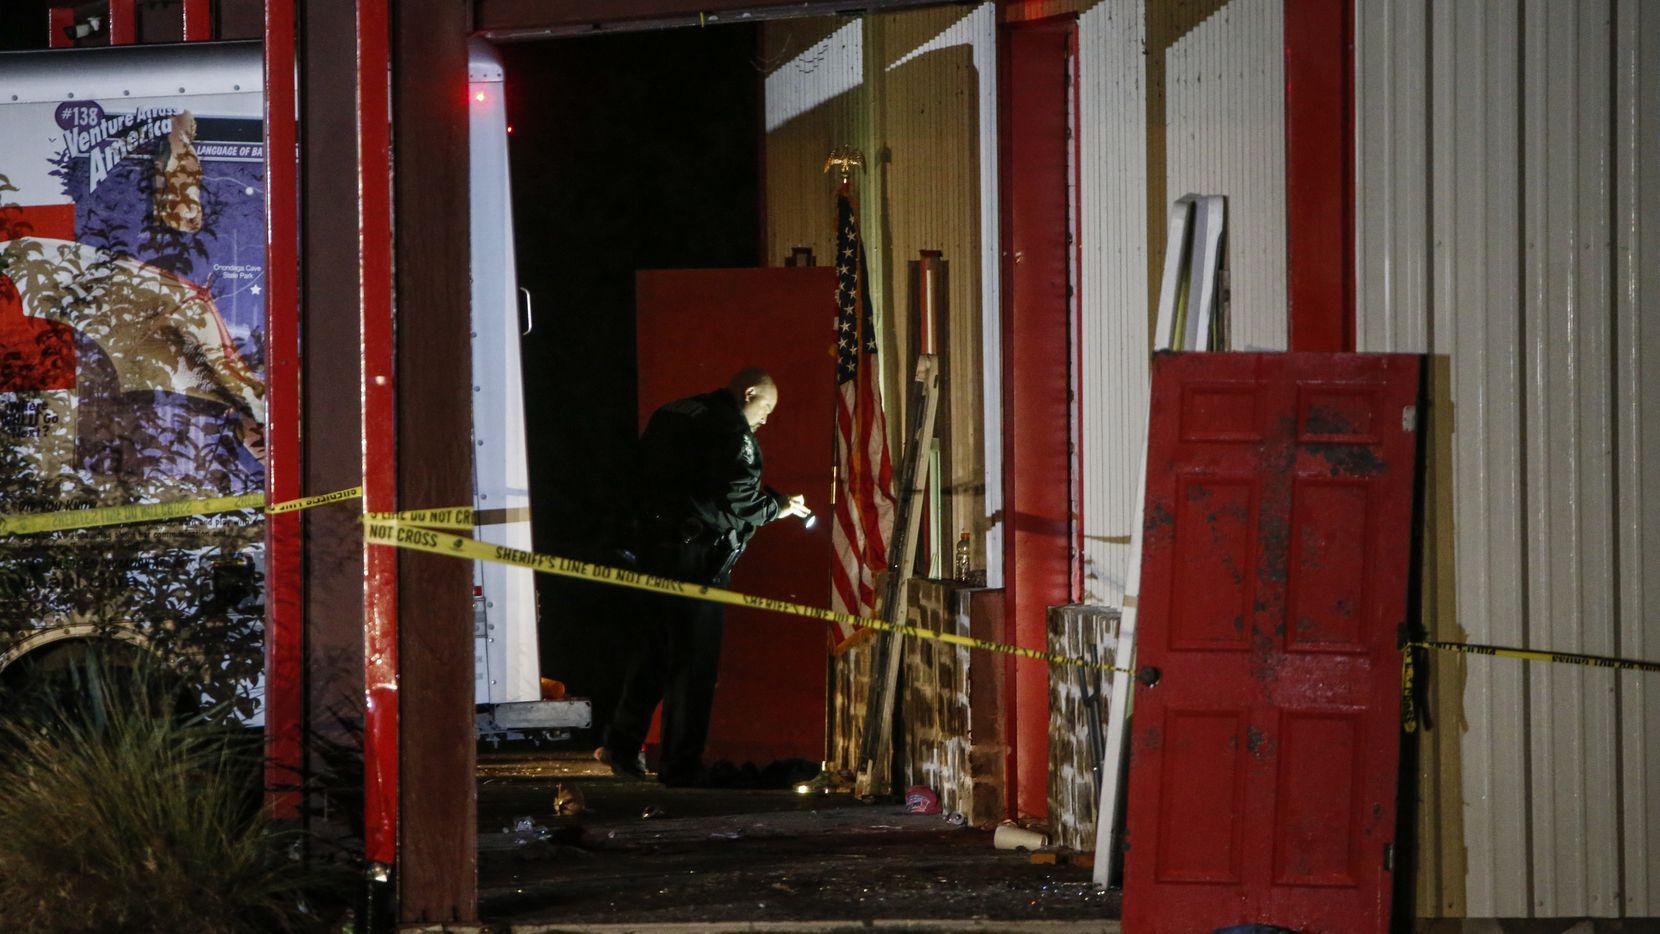 Officials work a crime scene after a shooting at Party Venue on Highway 380 in Greenville, Texas, on Sunday, October 27, 2019. As of early Sunday morning a gunman is still at large after killing at least two people and injuring 14 at Party Venue Saturday night, according to Hunt County Sheriff Randy Meeks.